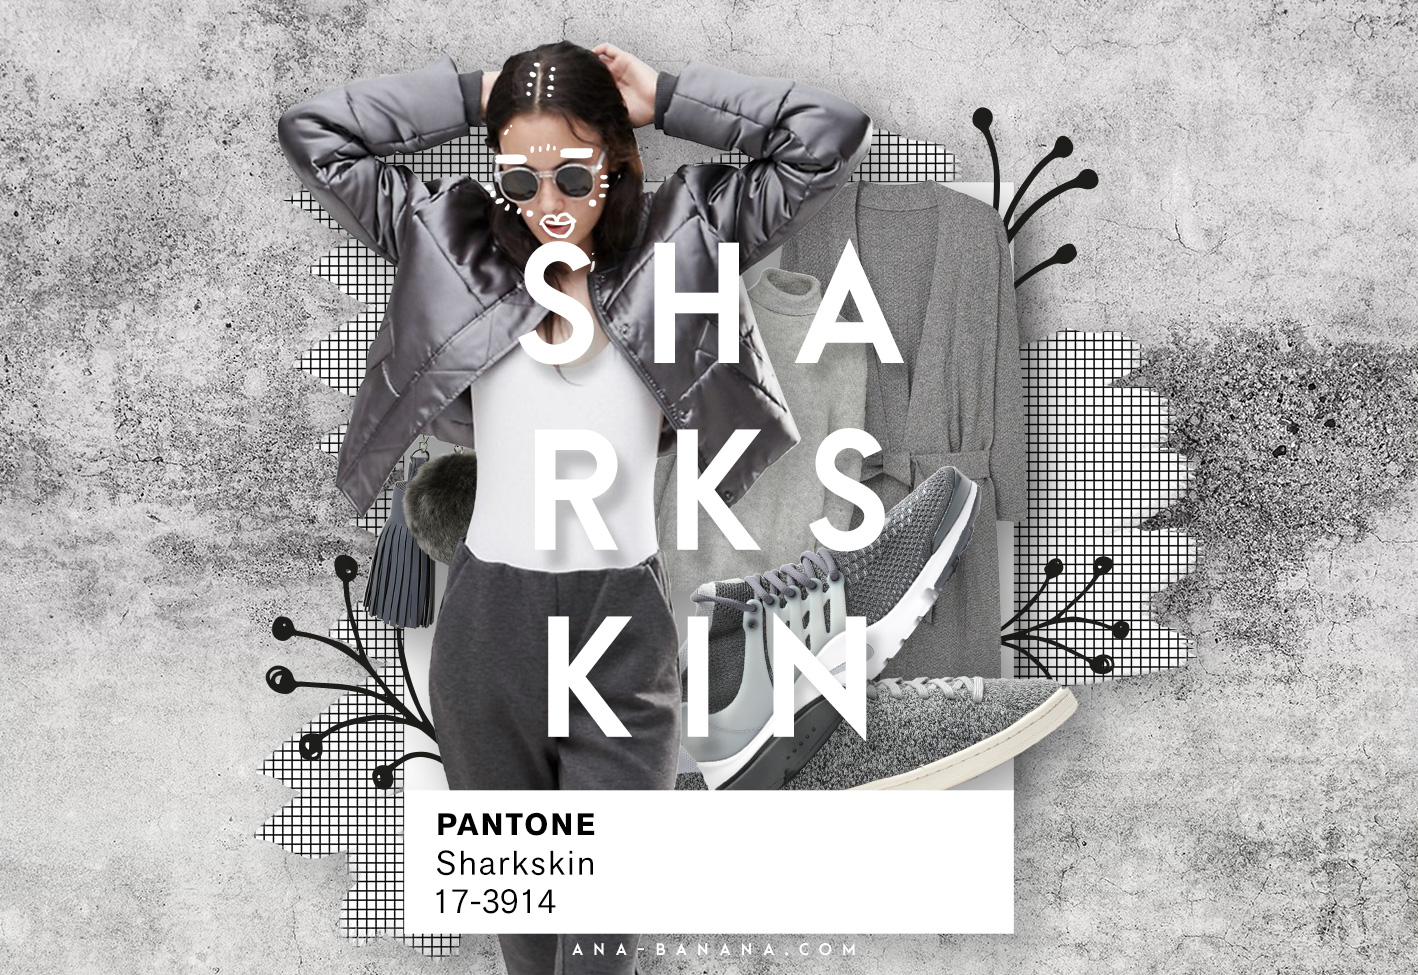 pantone farben herbst winter 2016 2017 sharkskin inspiration